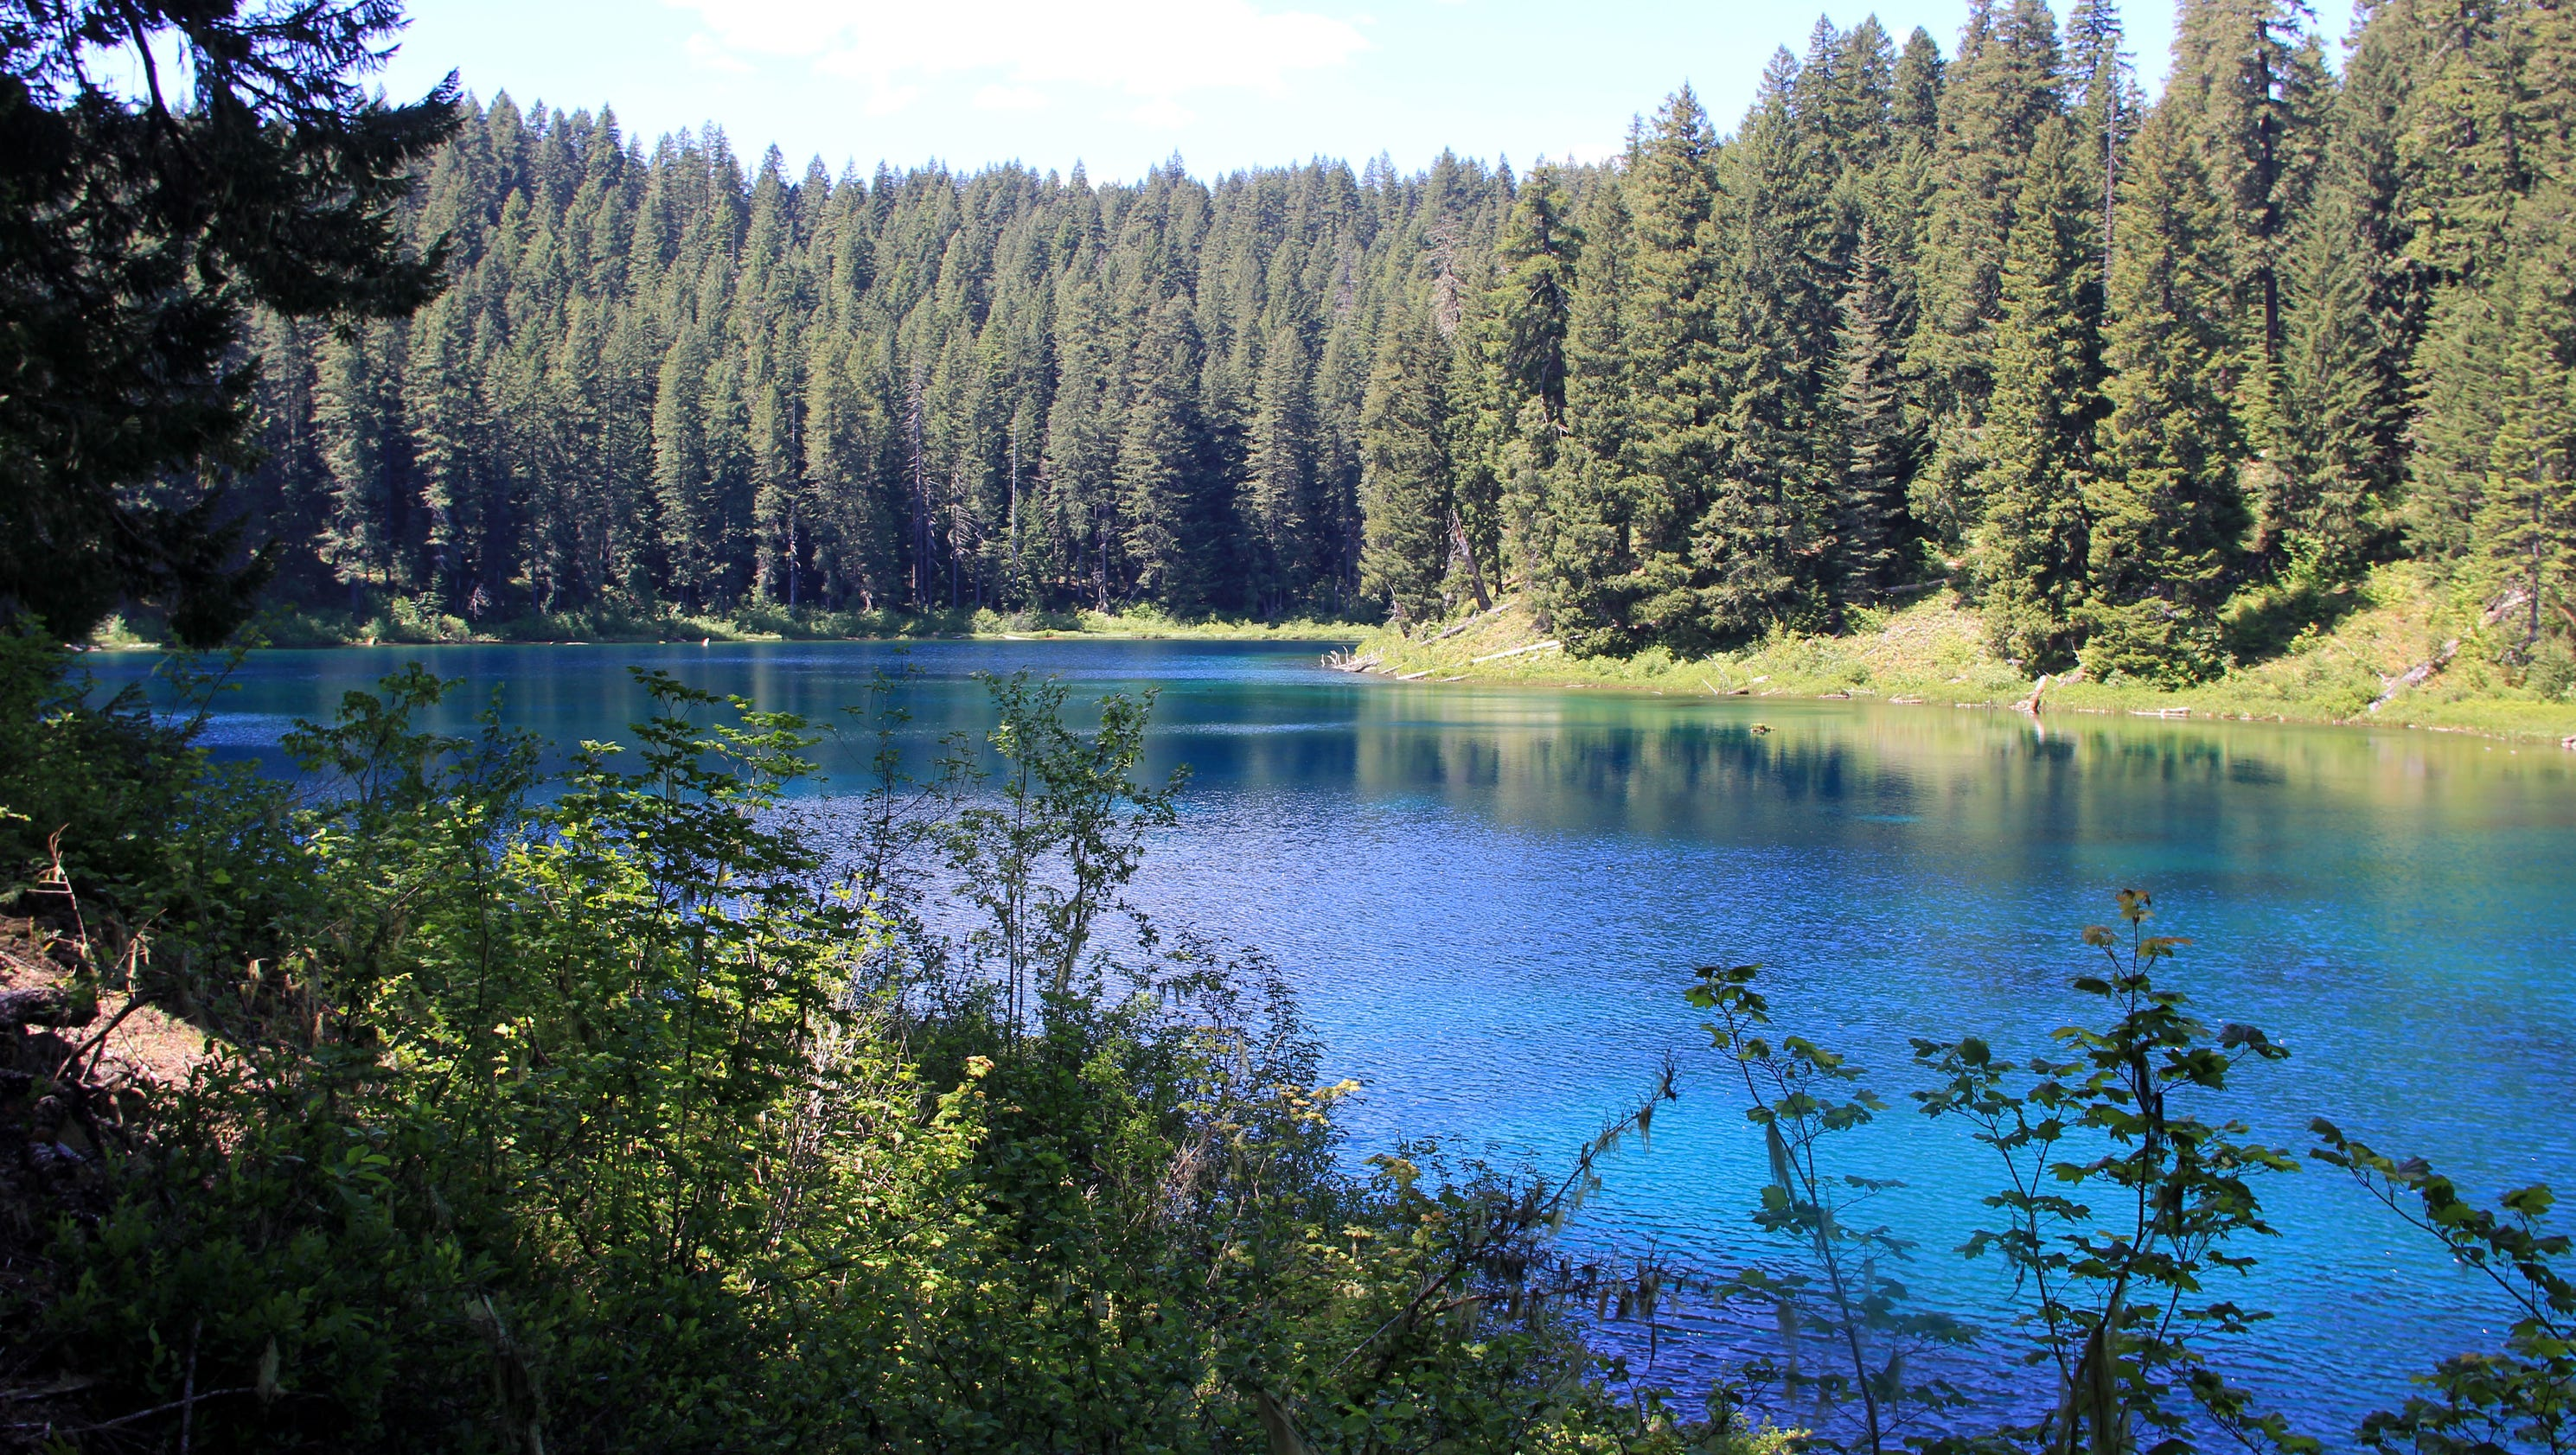 Head to oregon 39 s mountains lakes for excellent trout fishing for Clear lake oregon fishing